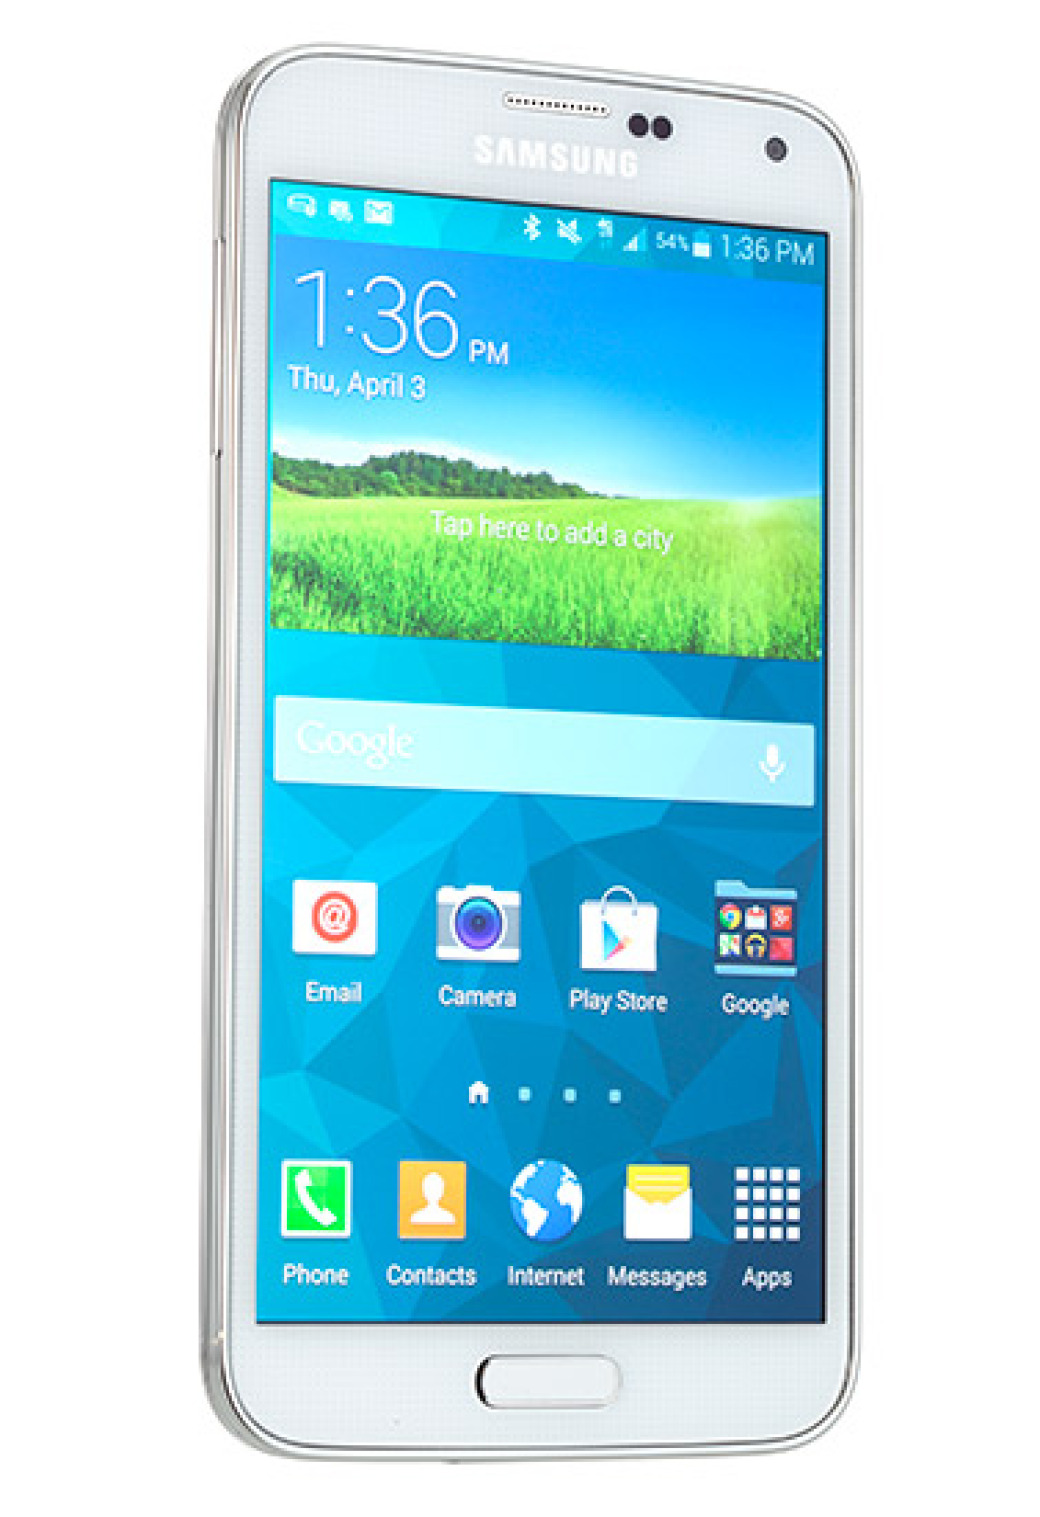 Harga Samsung S5 Prime : harga, samsung, prime, Samsung, Wallpaper, Collection